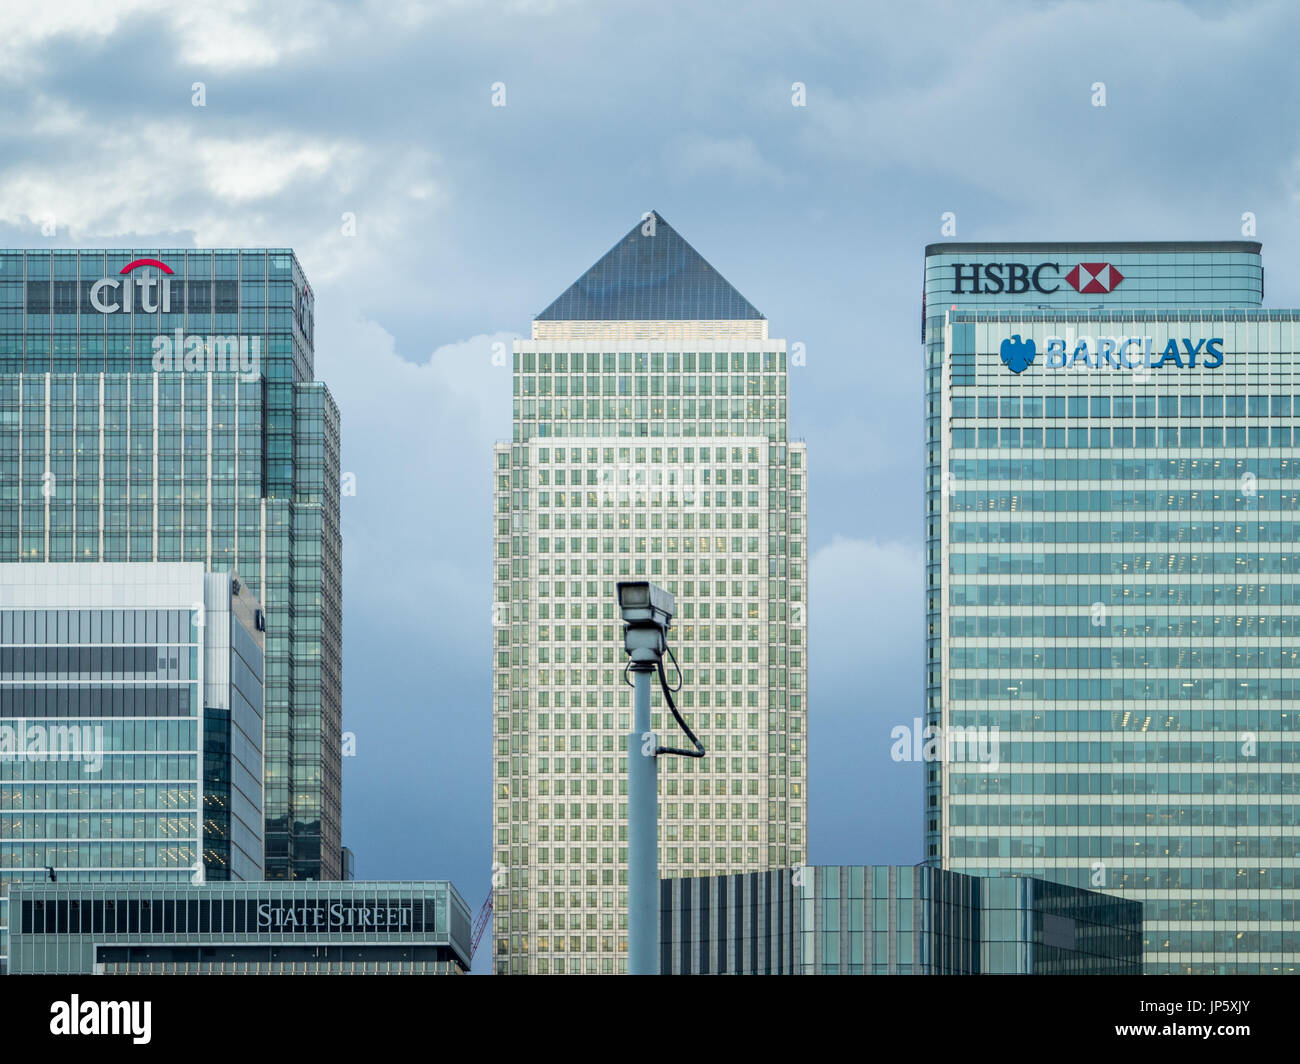 Canary Wharf, a major financial district in London, is seen from across the River Thames with a CCTV camera in the foreground. - Stock Image